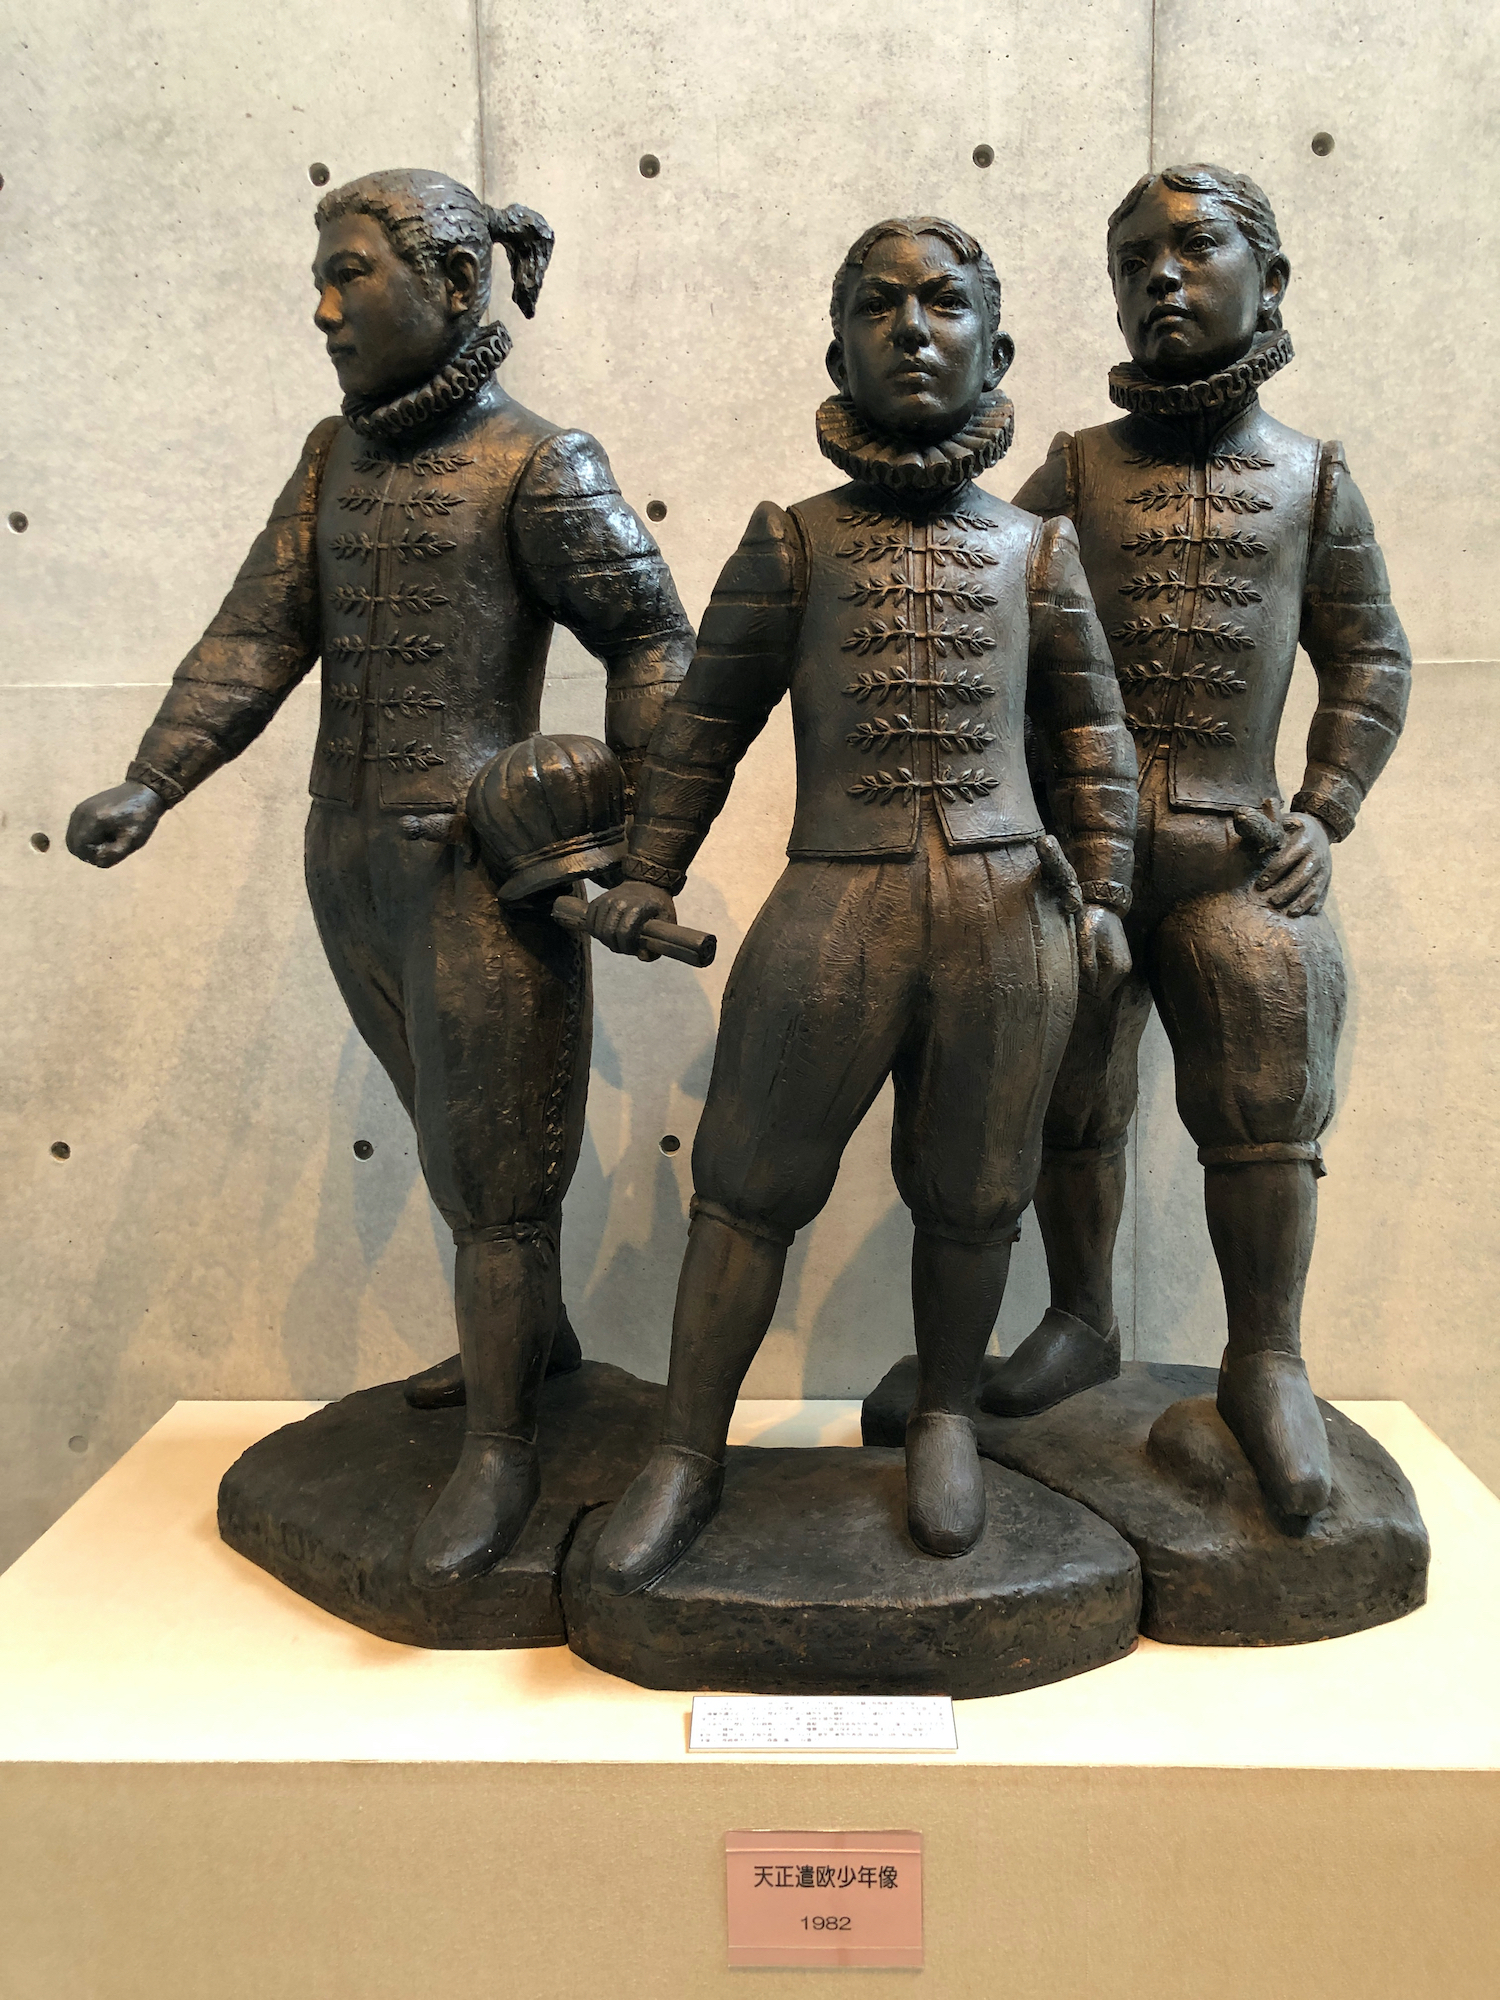 statues of 3 boys in 16th C European clothes